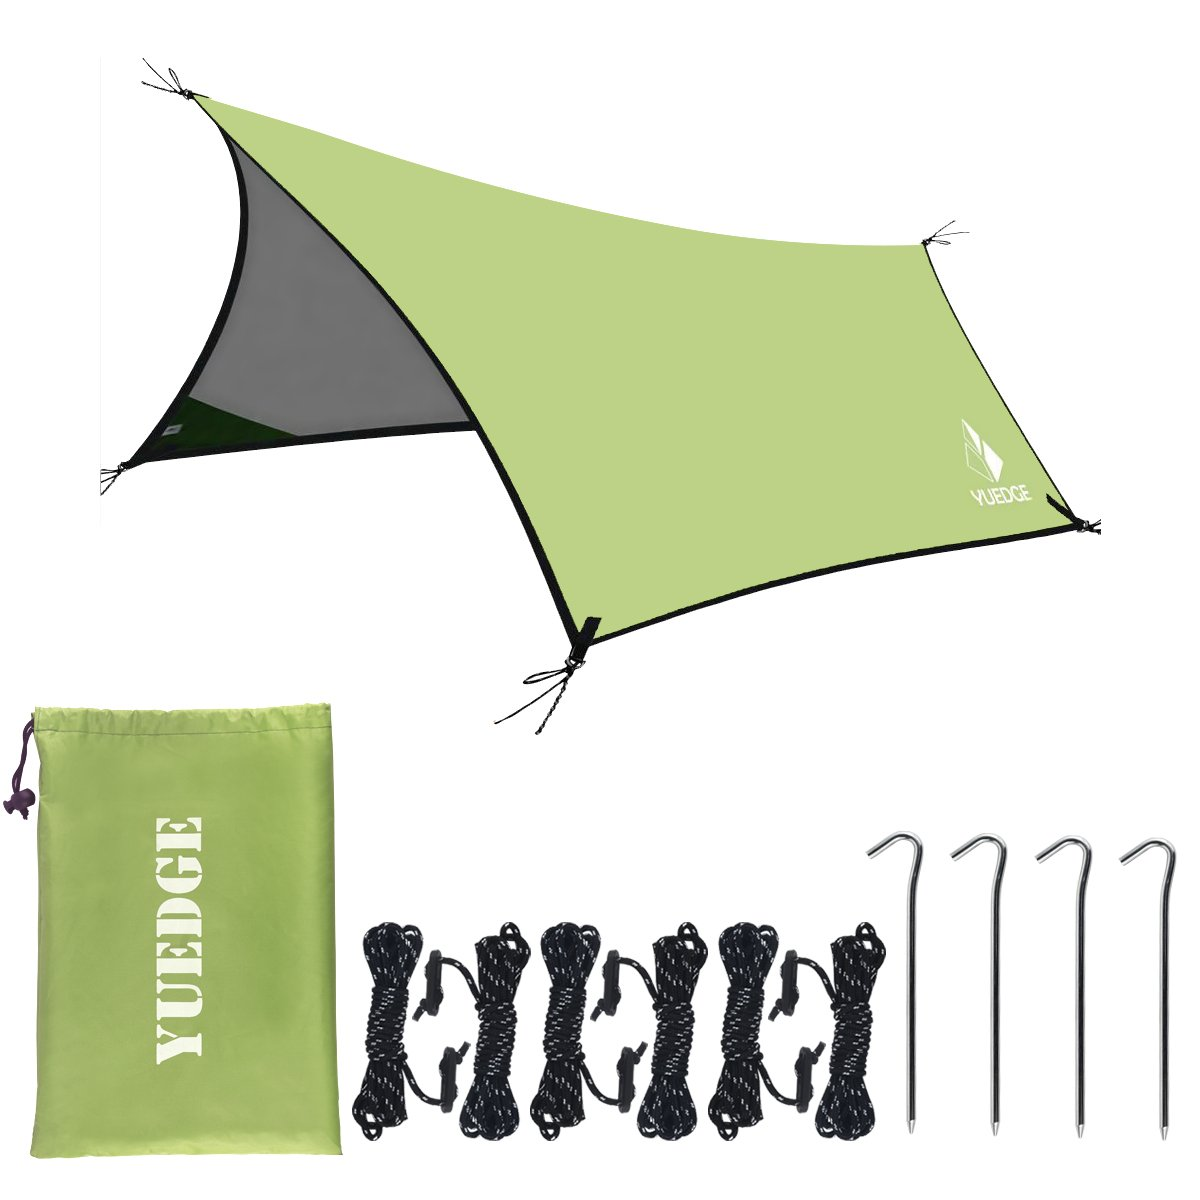 YUEDGE 13 Ft Rain Fly Traps Waterproof Camping Tent Tarps Hammock Rain Fly Shelter Sunshade Rope Stakes, Army, 10' x 13', XL=L400XW300 cm, Green by YUEDGE